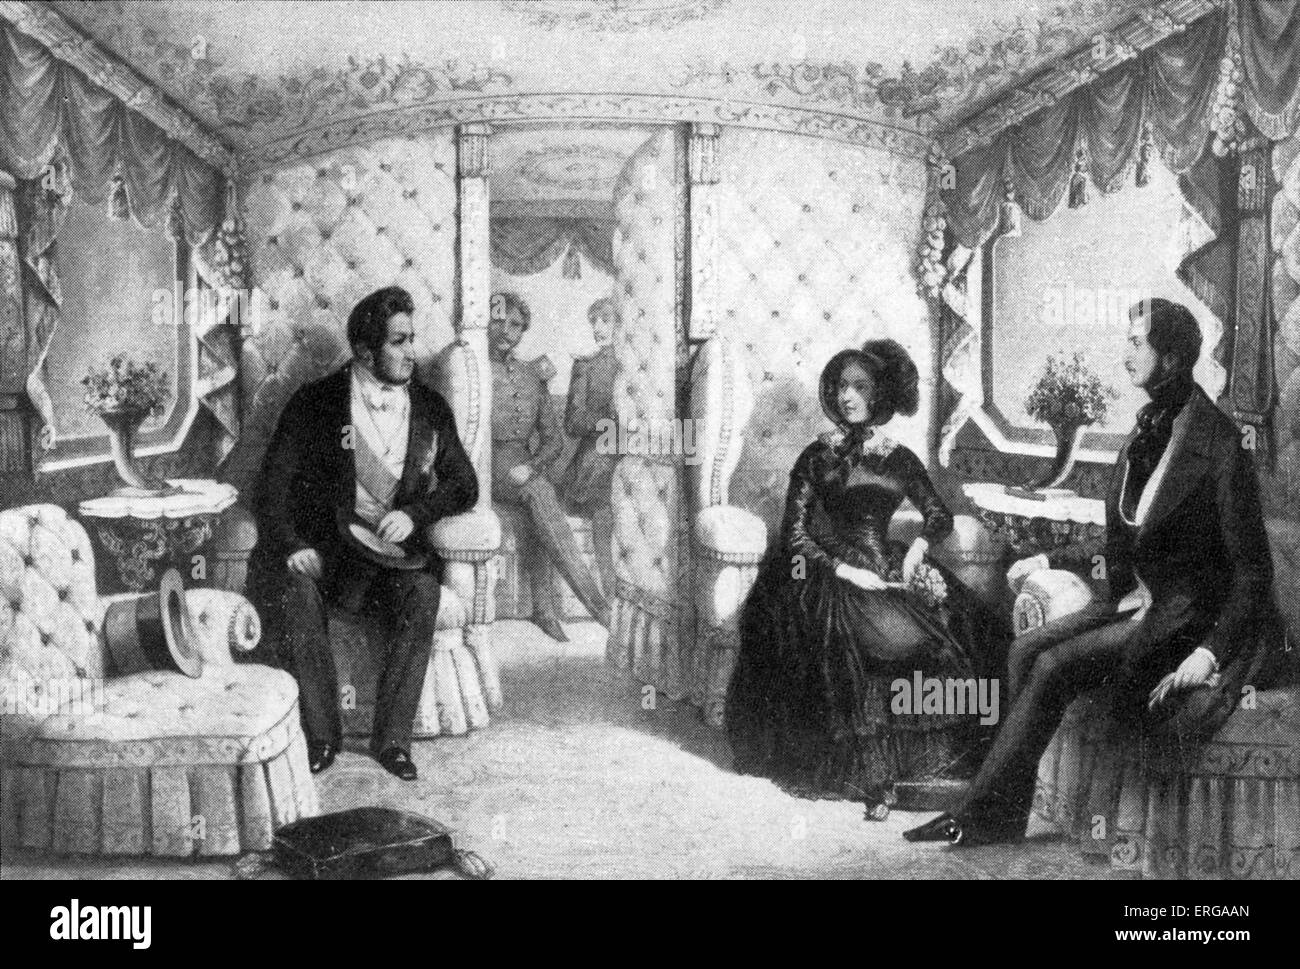 Queen Victoria receiving Louis Philippe I of France in royal railway carriage, ca 1844. - Stock Image